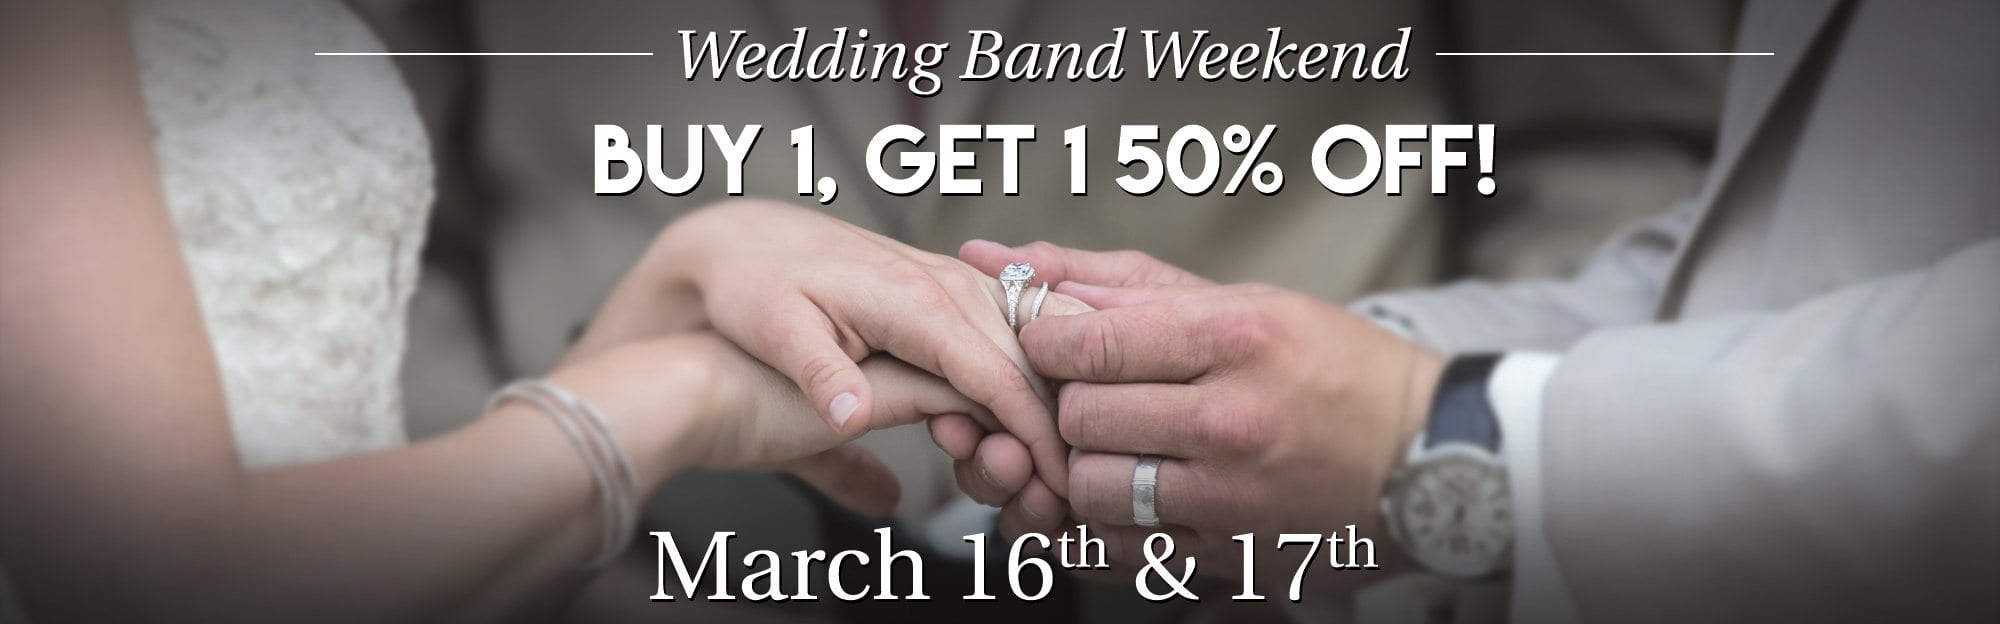 Wedding Band Weekend 1 Get 50 Off March 16th And